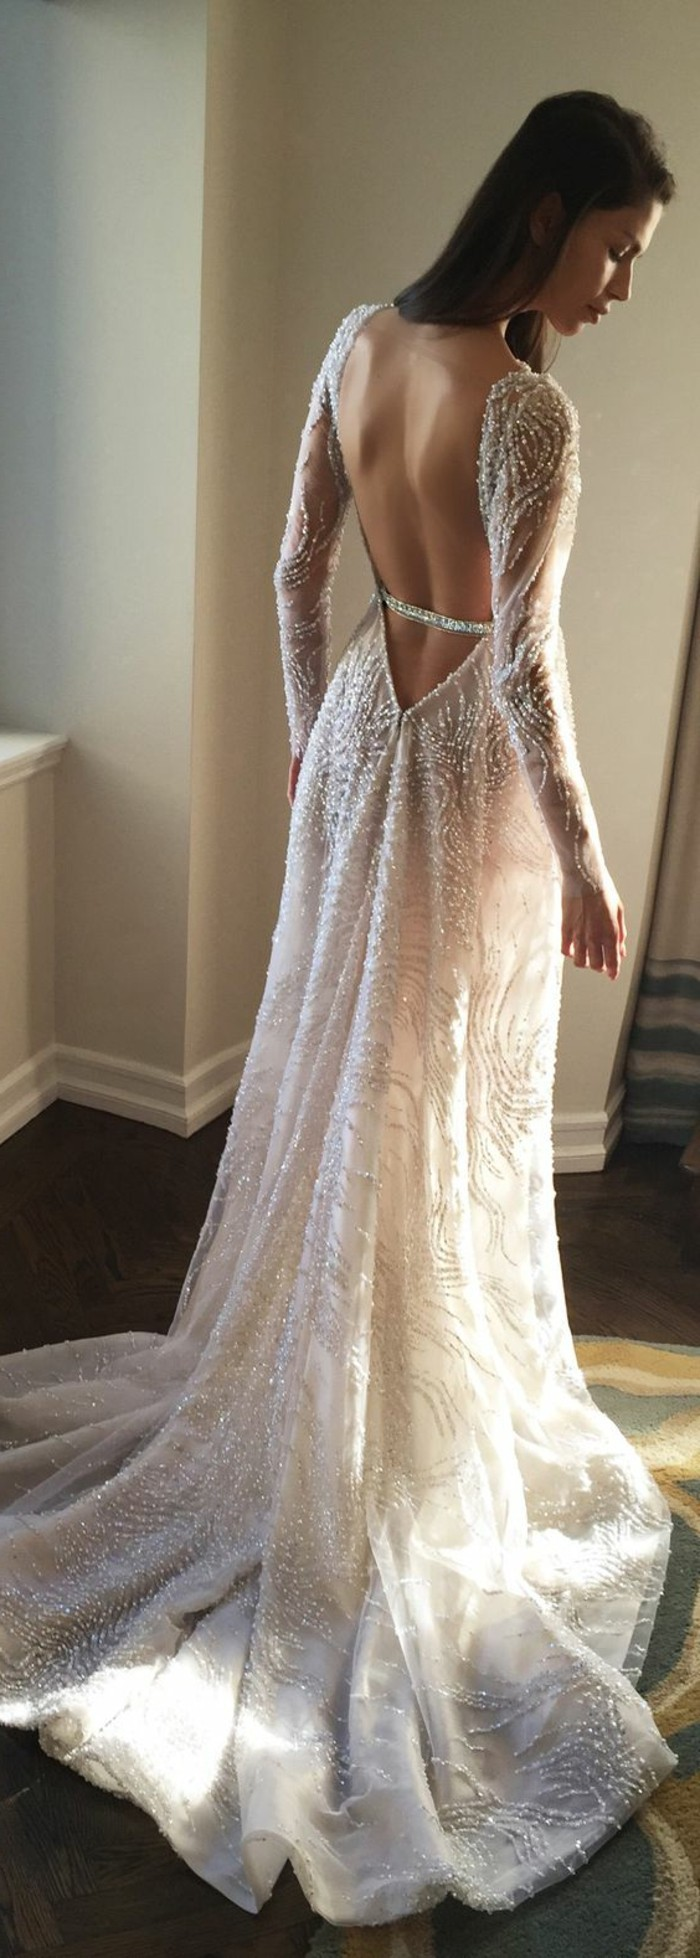 formidable-robe-de-mariee-manches-longues-adorable-mariee